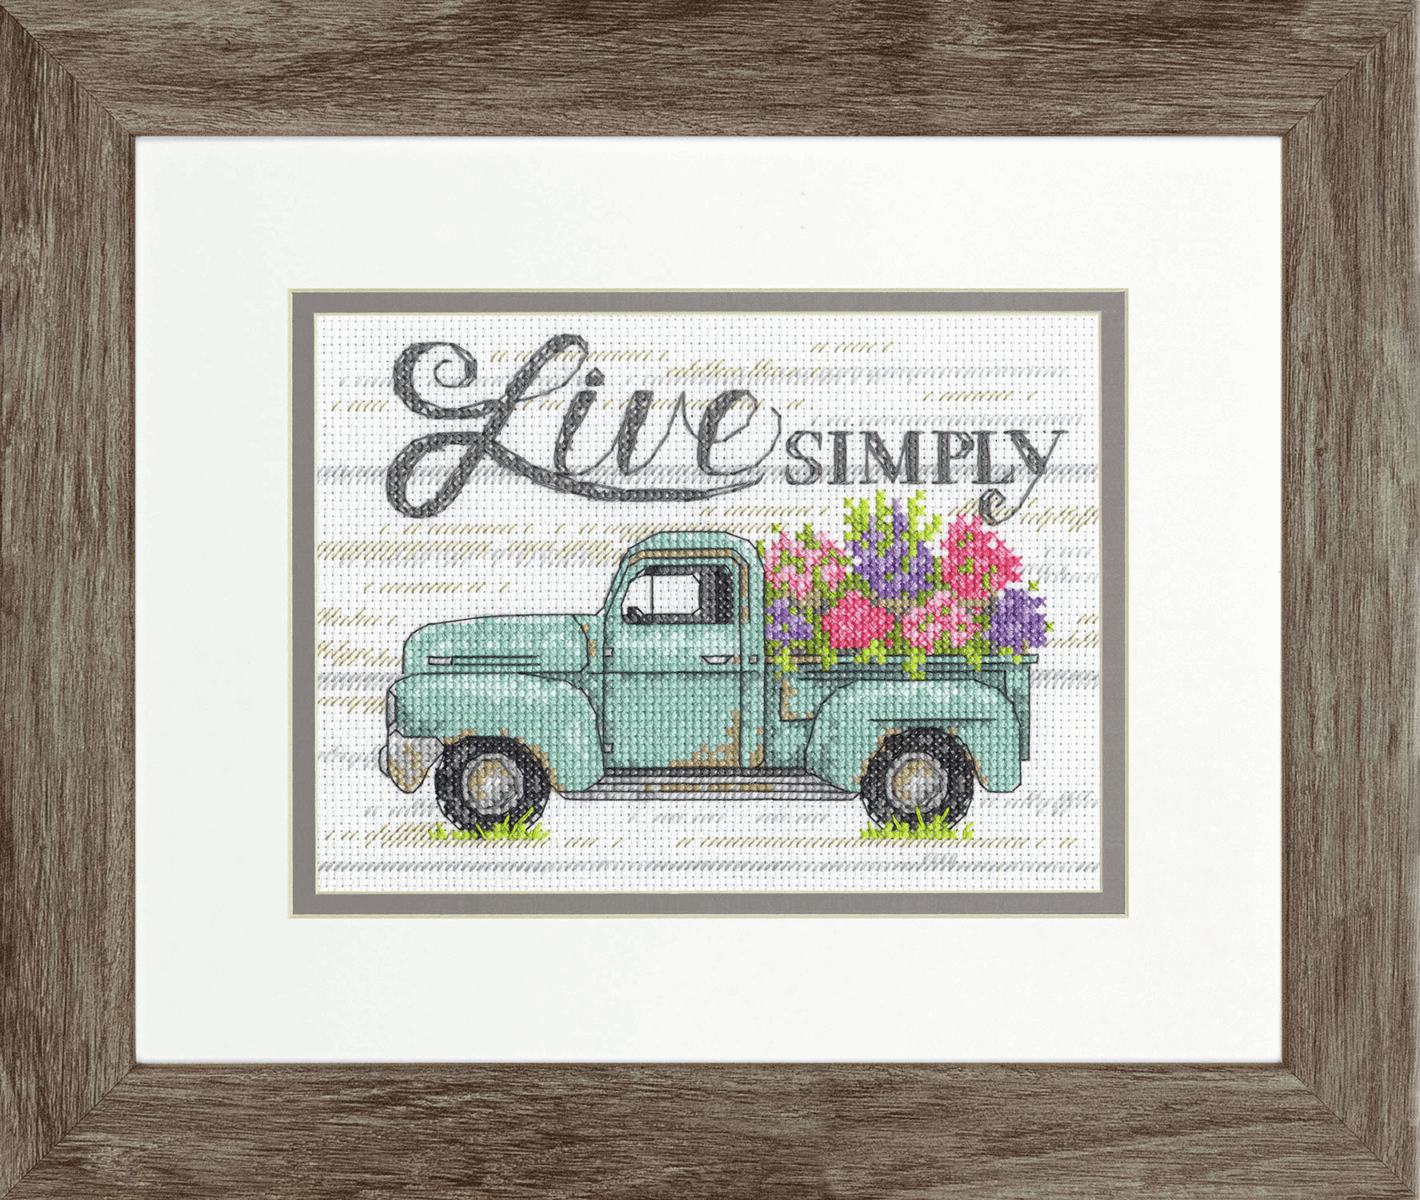 Picture of Counted Cross Stitch Kit: Flower Truck